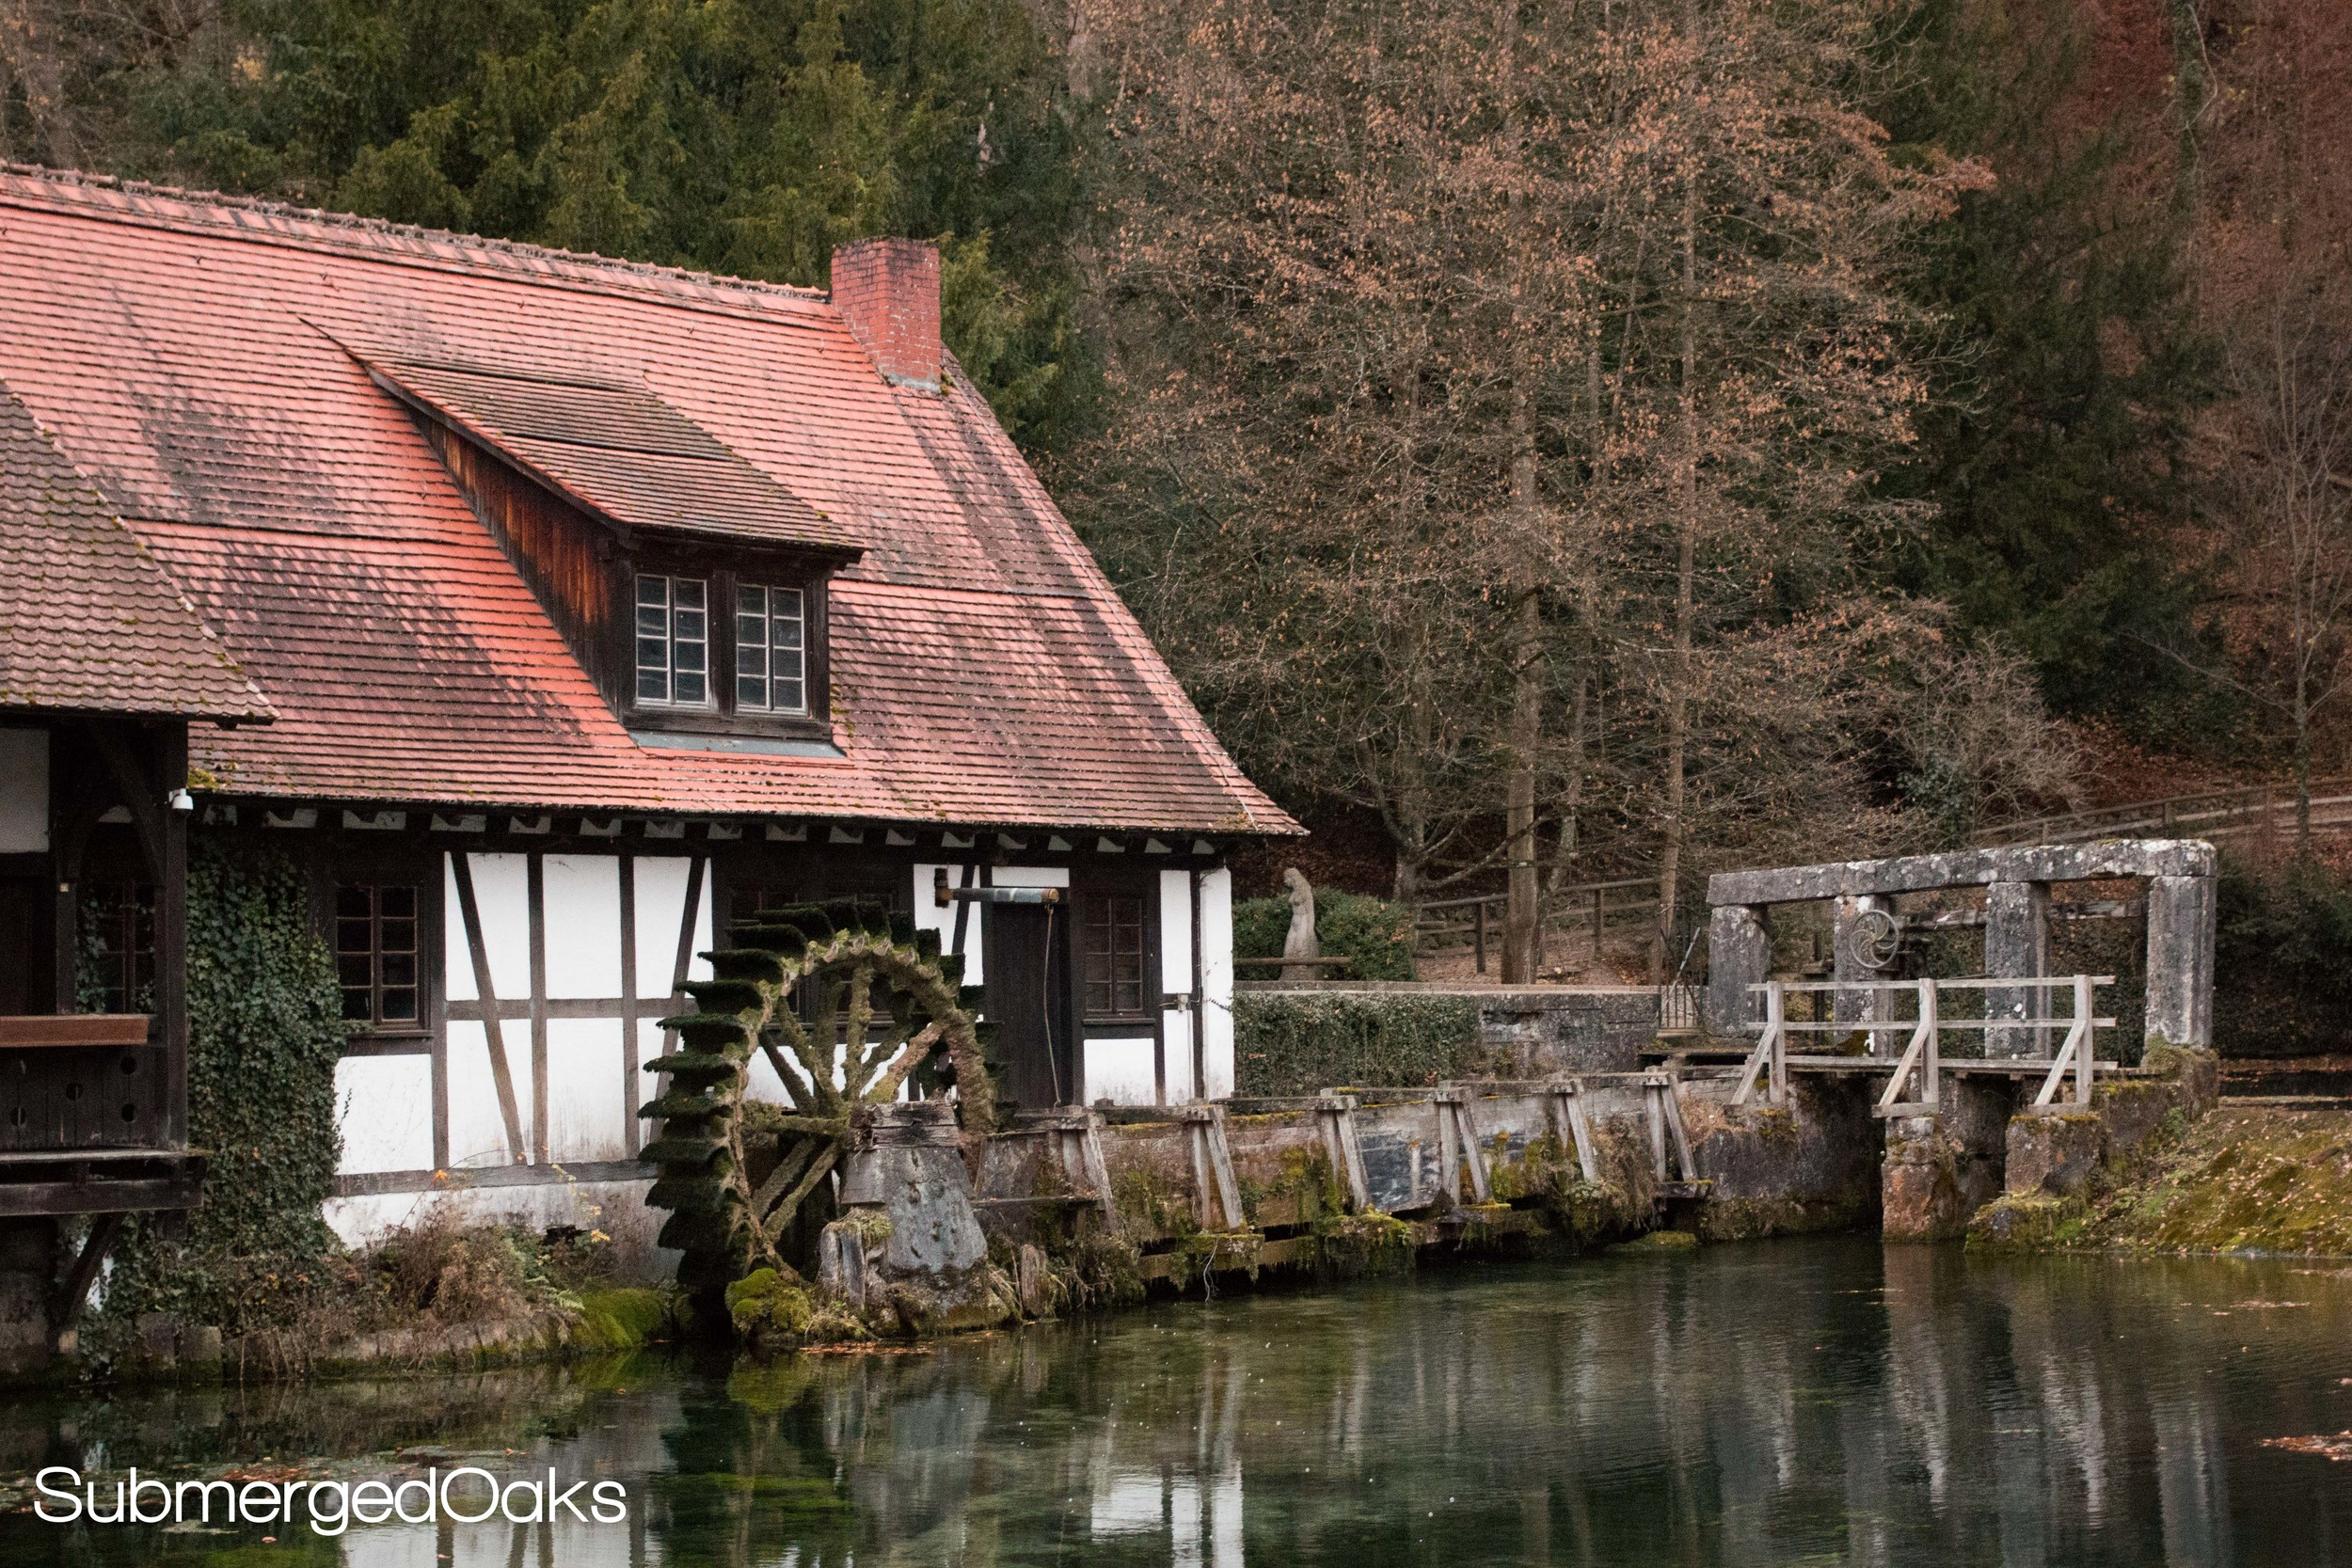 Old saw mill on the banks of the Blautopf spring